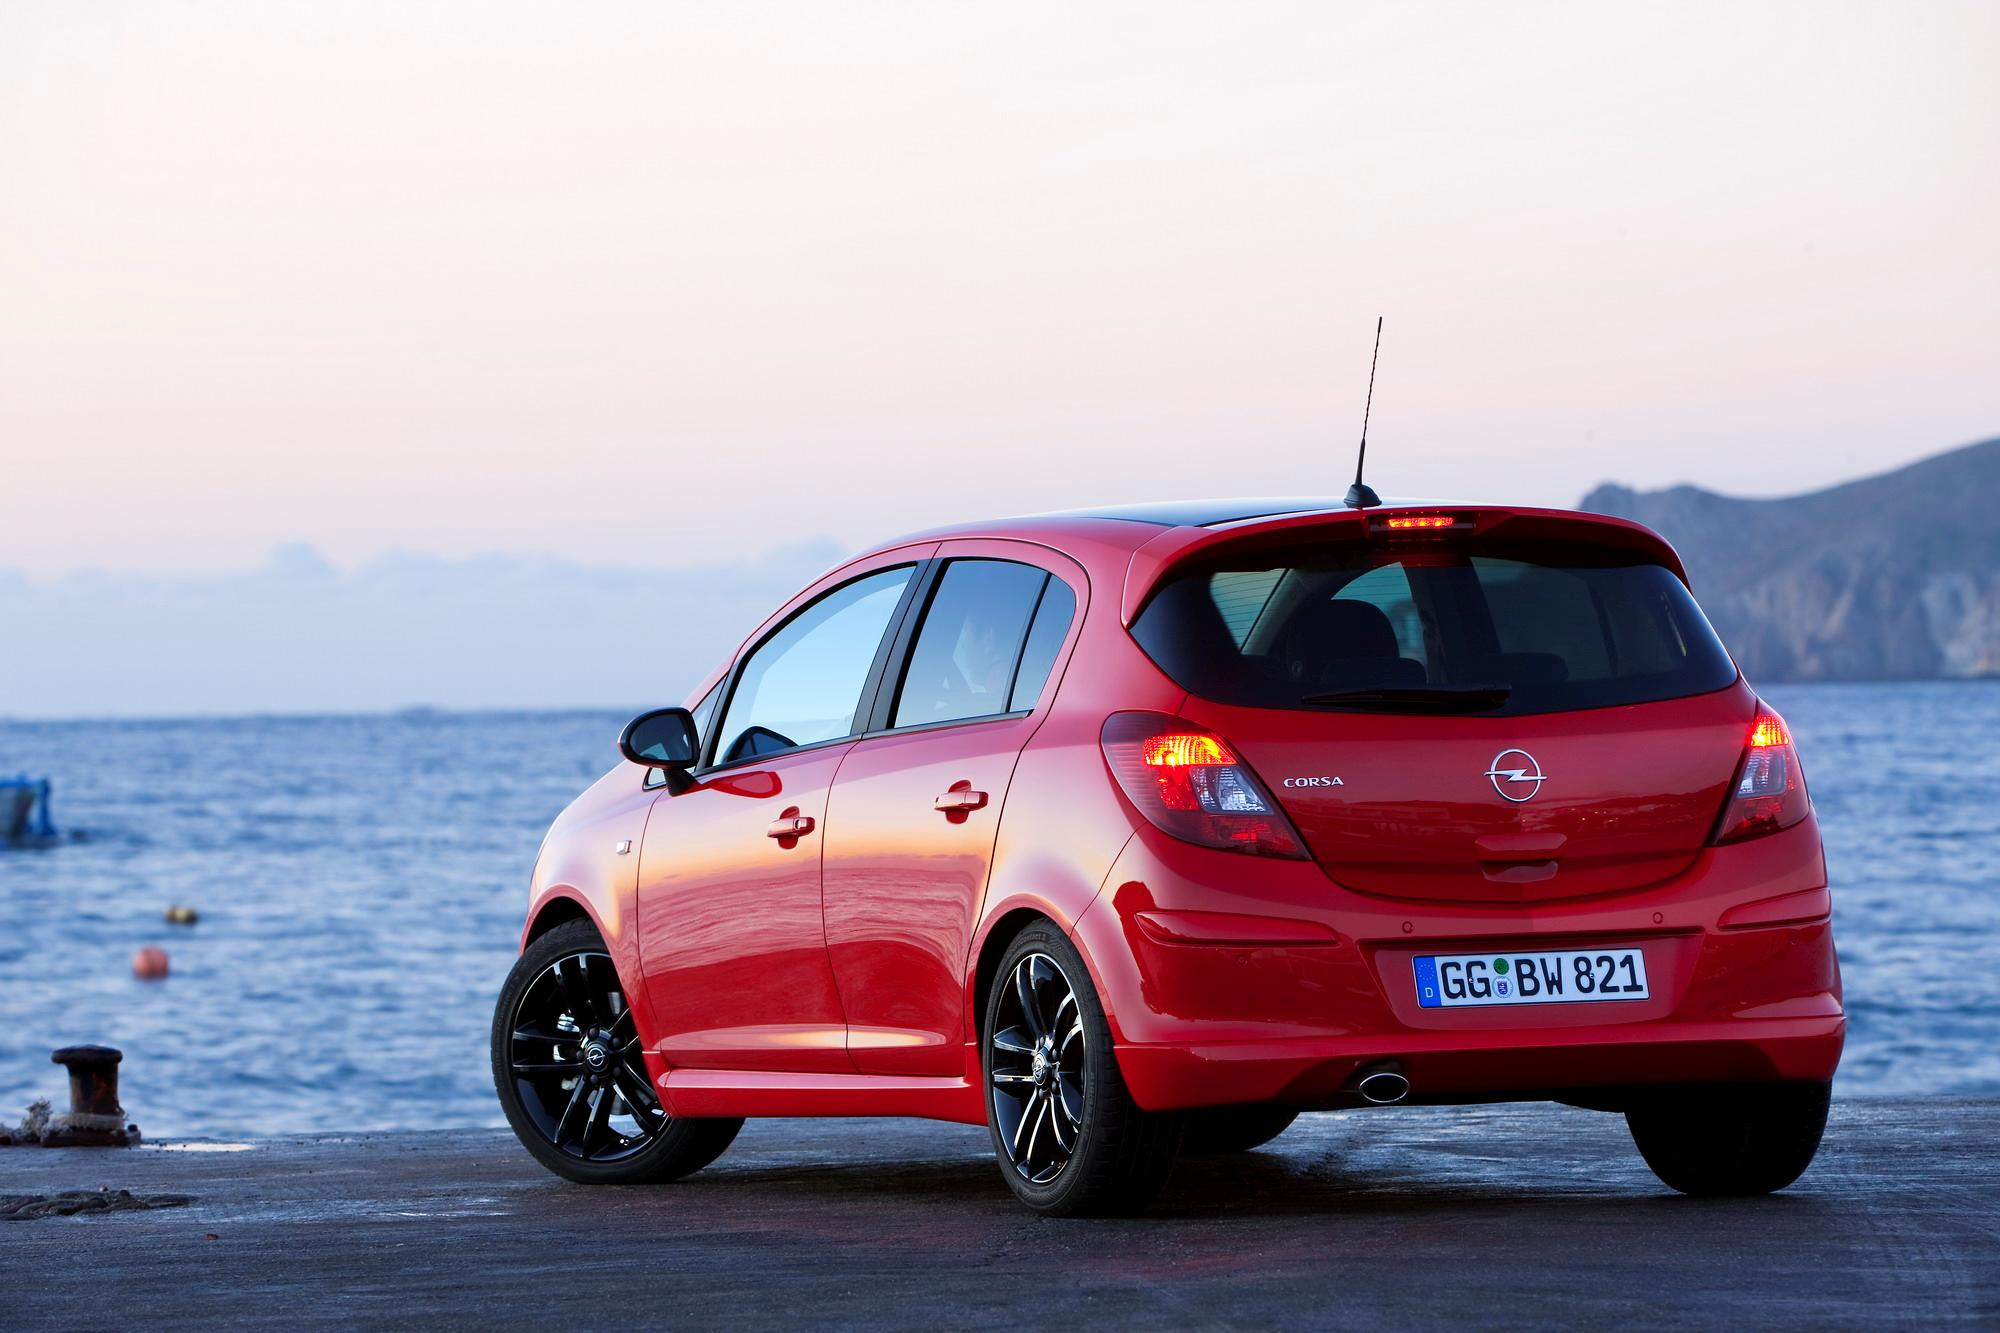 2010 opel corsa review gallery 334135 top speed. Black Bedroom Furniture Sets. Home Design Ideas